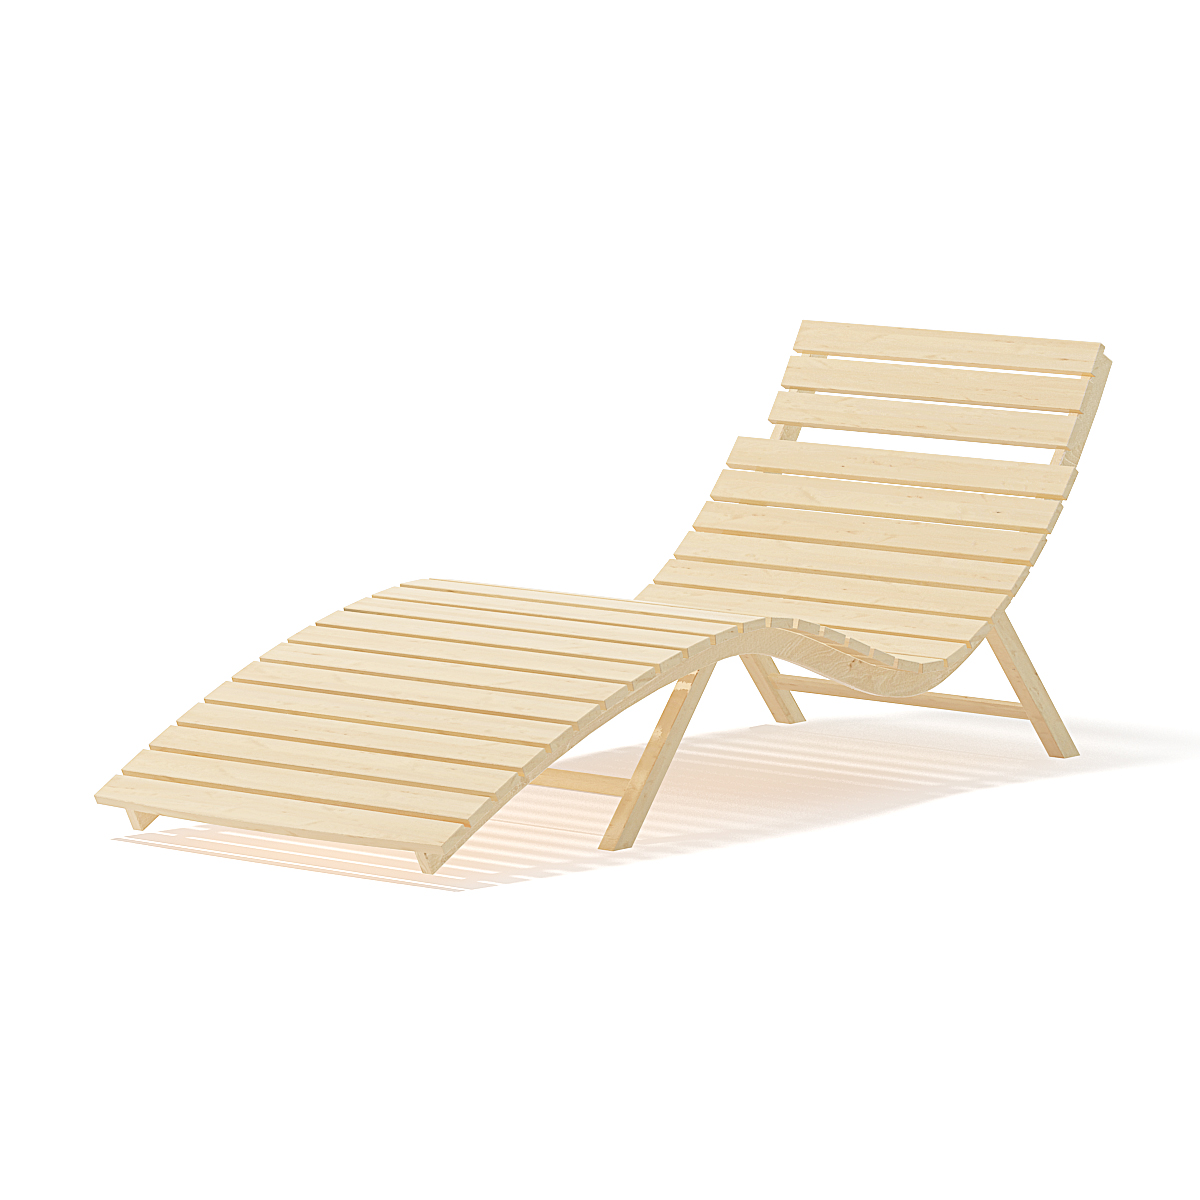 Wooden Deck Chair 10D Model